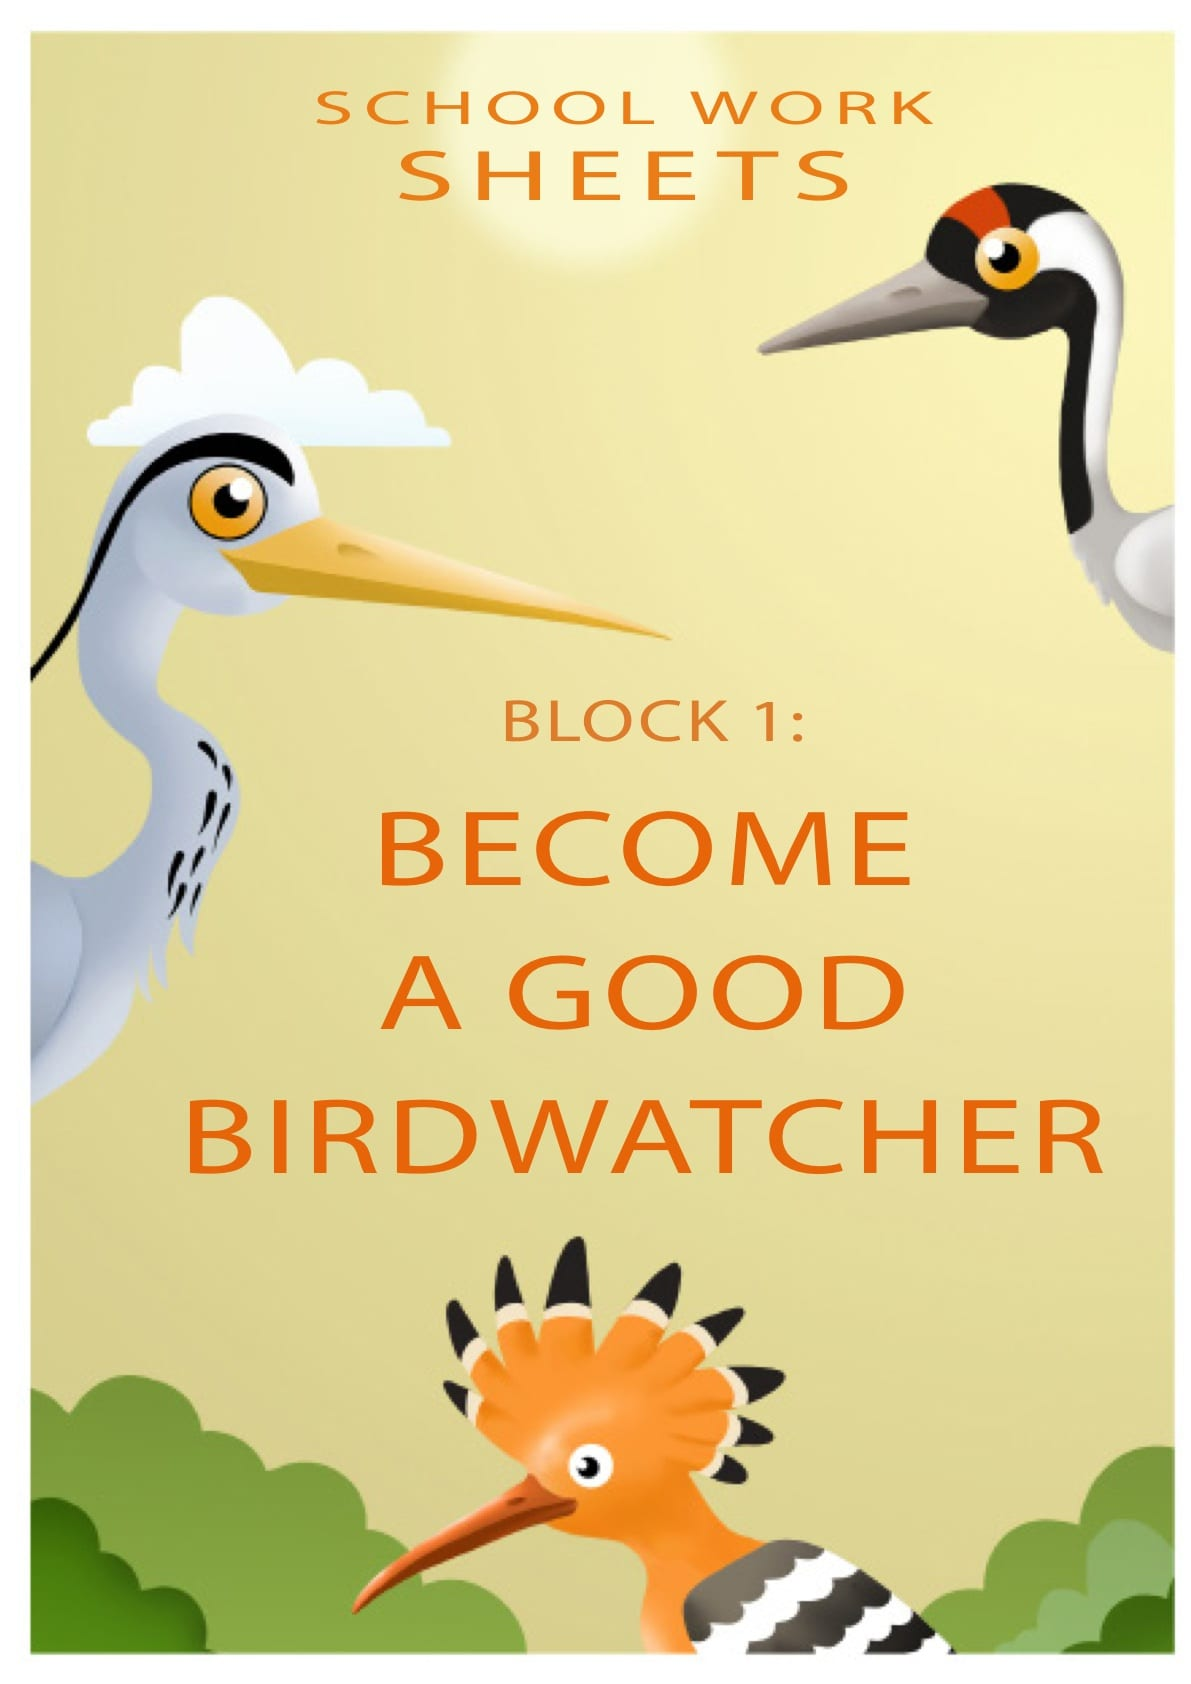 Become a good birdwatcher